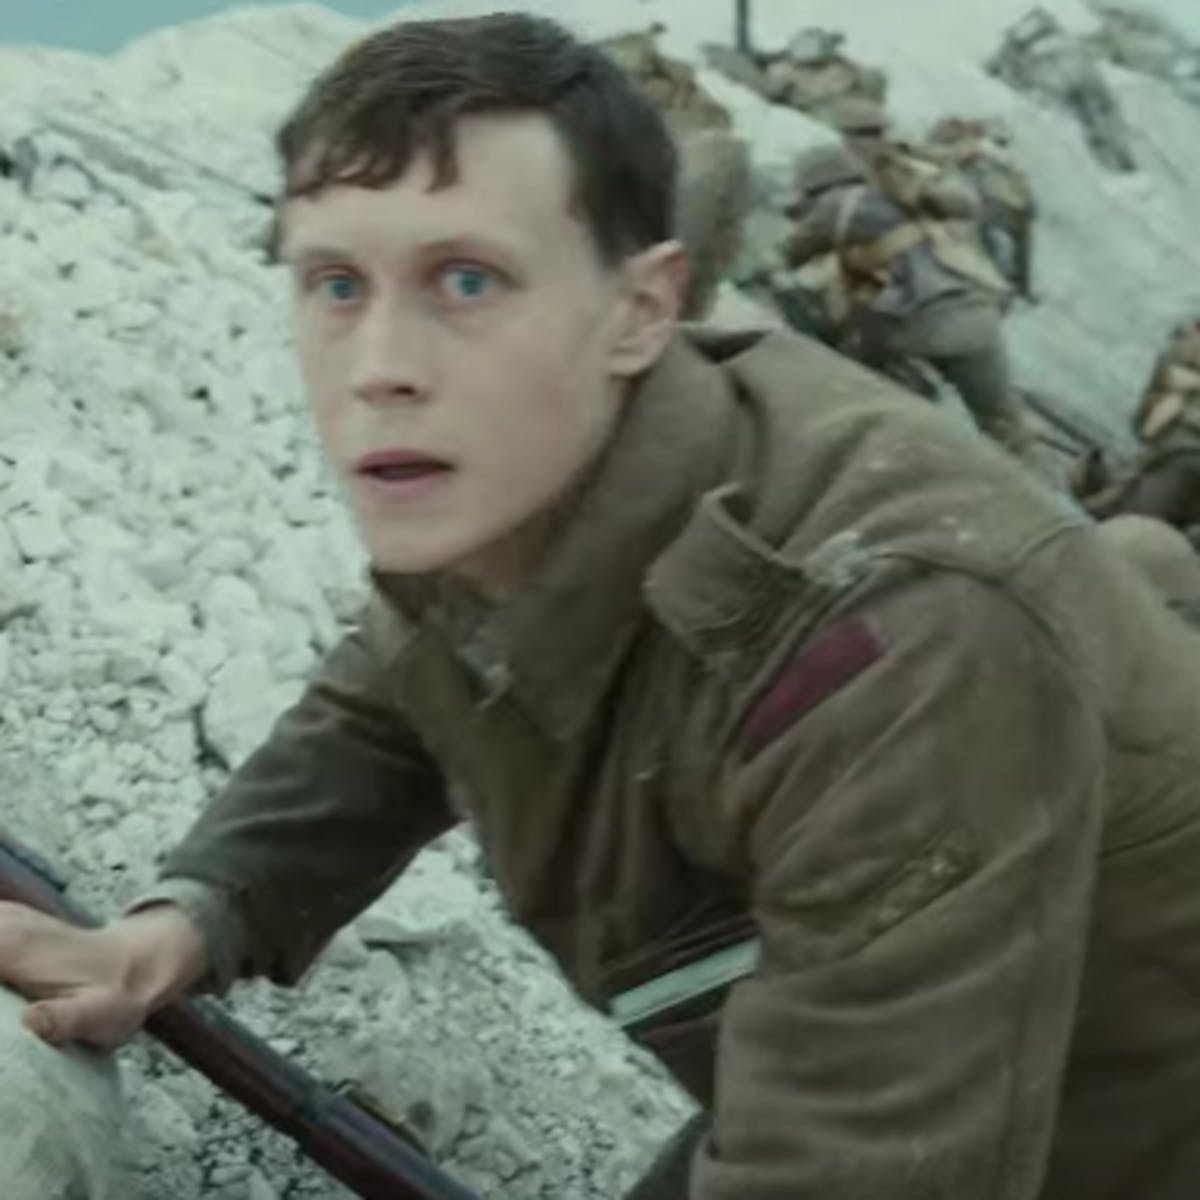 '1917': New trailer shows the horrors of war in this epic single-shot movie